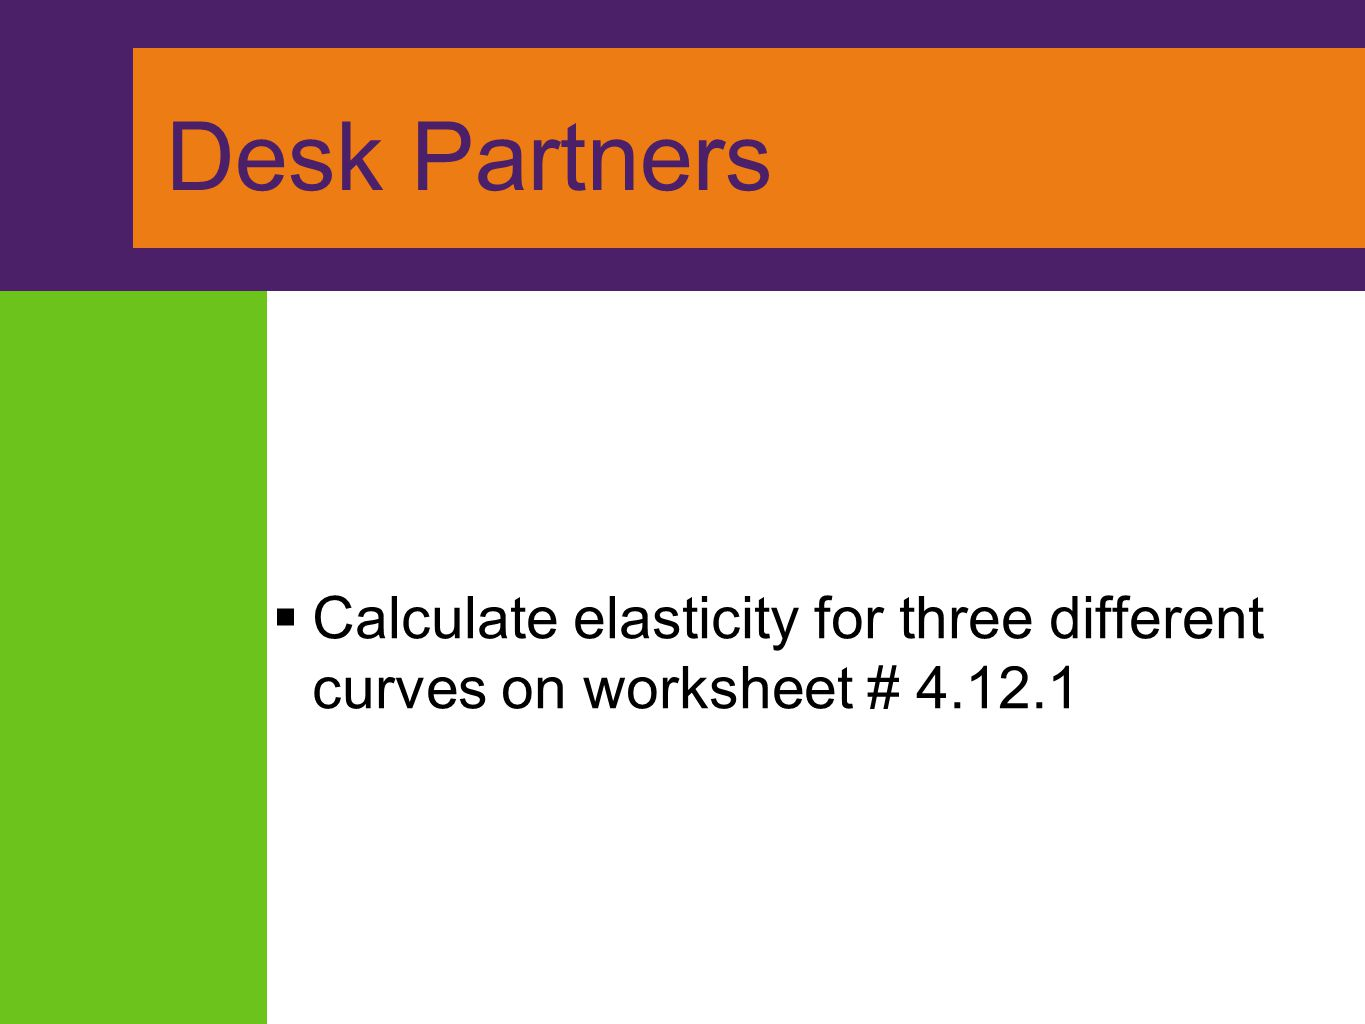 Desk Partners Calculate elasticity for three different curves on worksheet # 4.12.1.